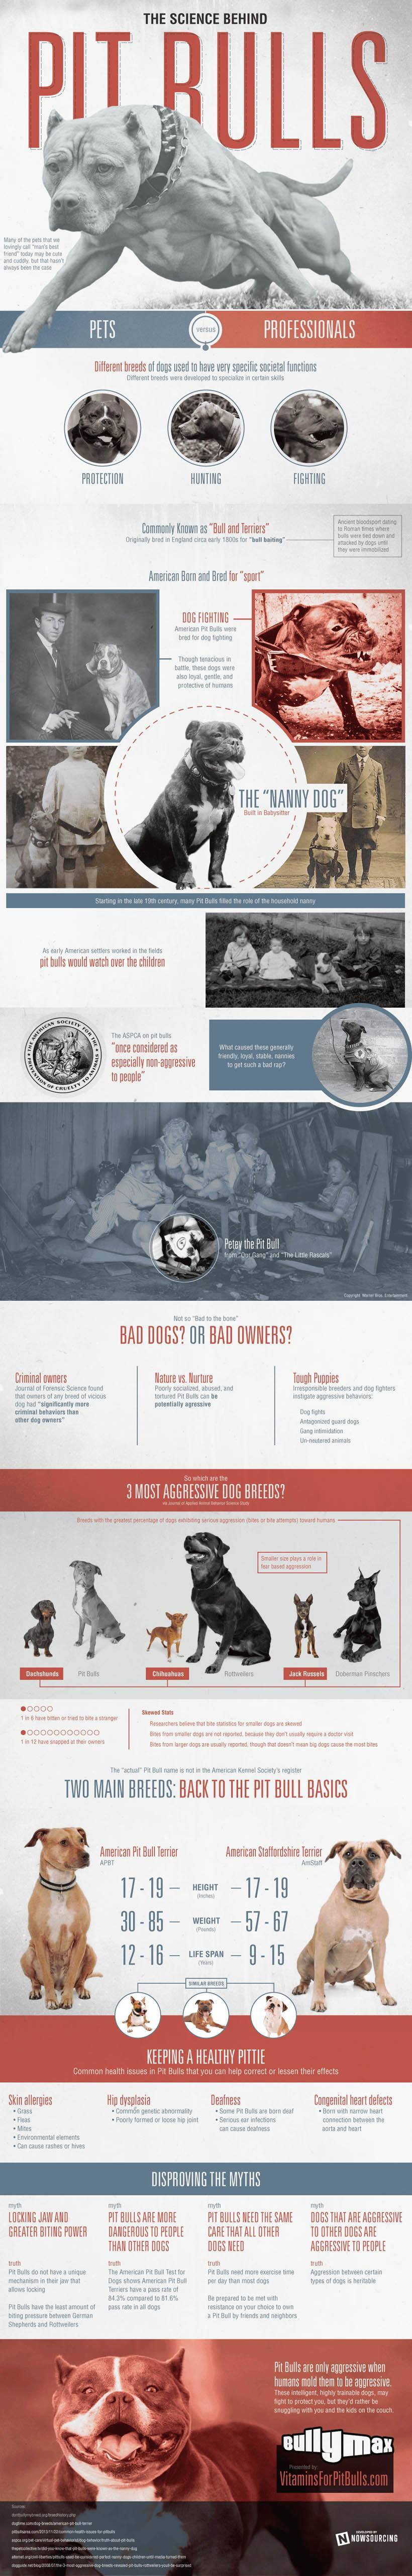 The Science Behind Pit Bulls – An infographic by Nowsourcing.com